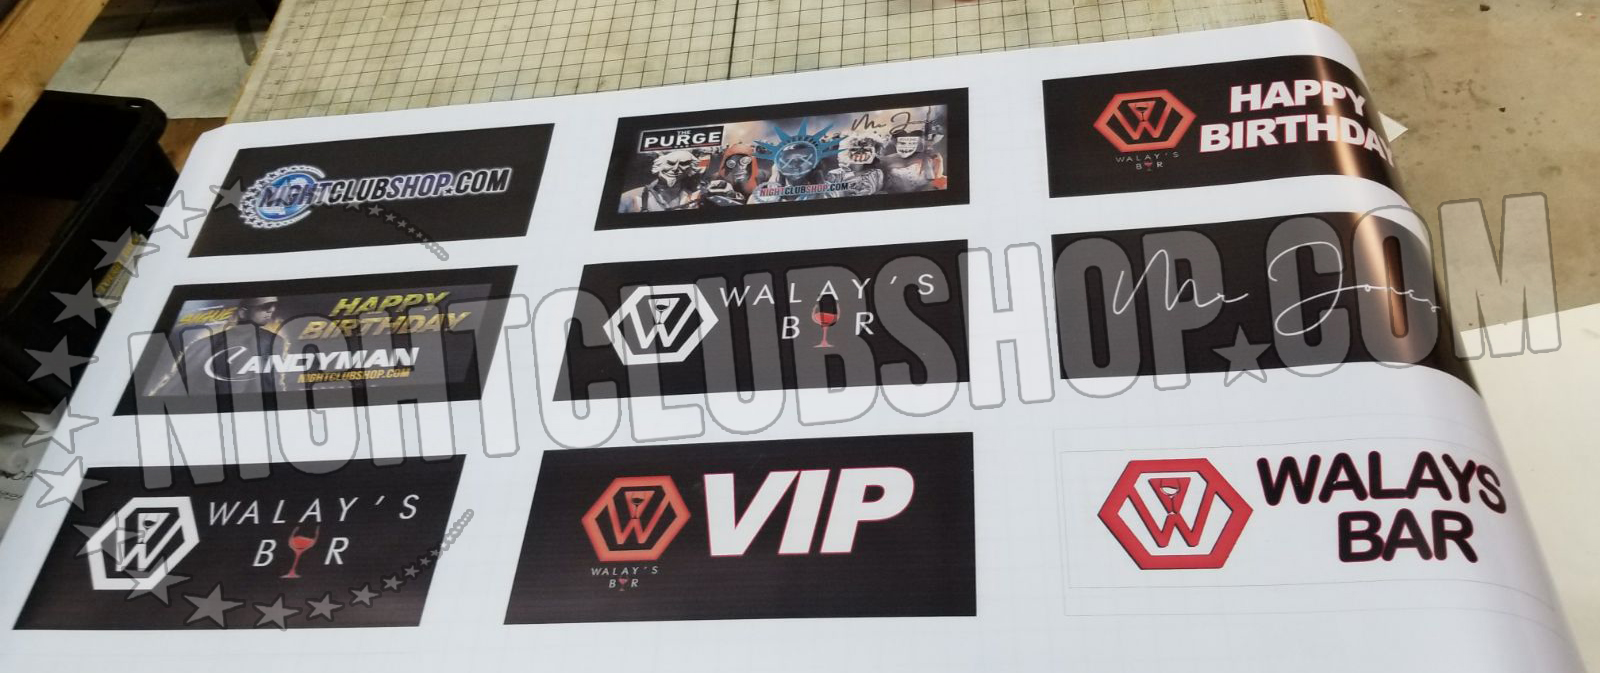 vip-banner-top-interchangeable-tray-lightbox-light-up-print-banner-top-bottle-service-tray-presenter-nightclubshop-4.jpg